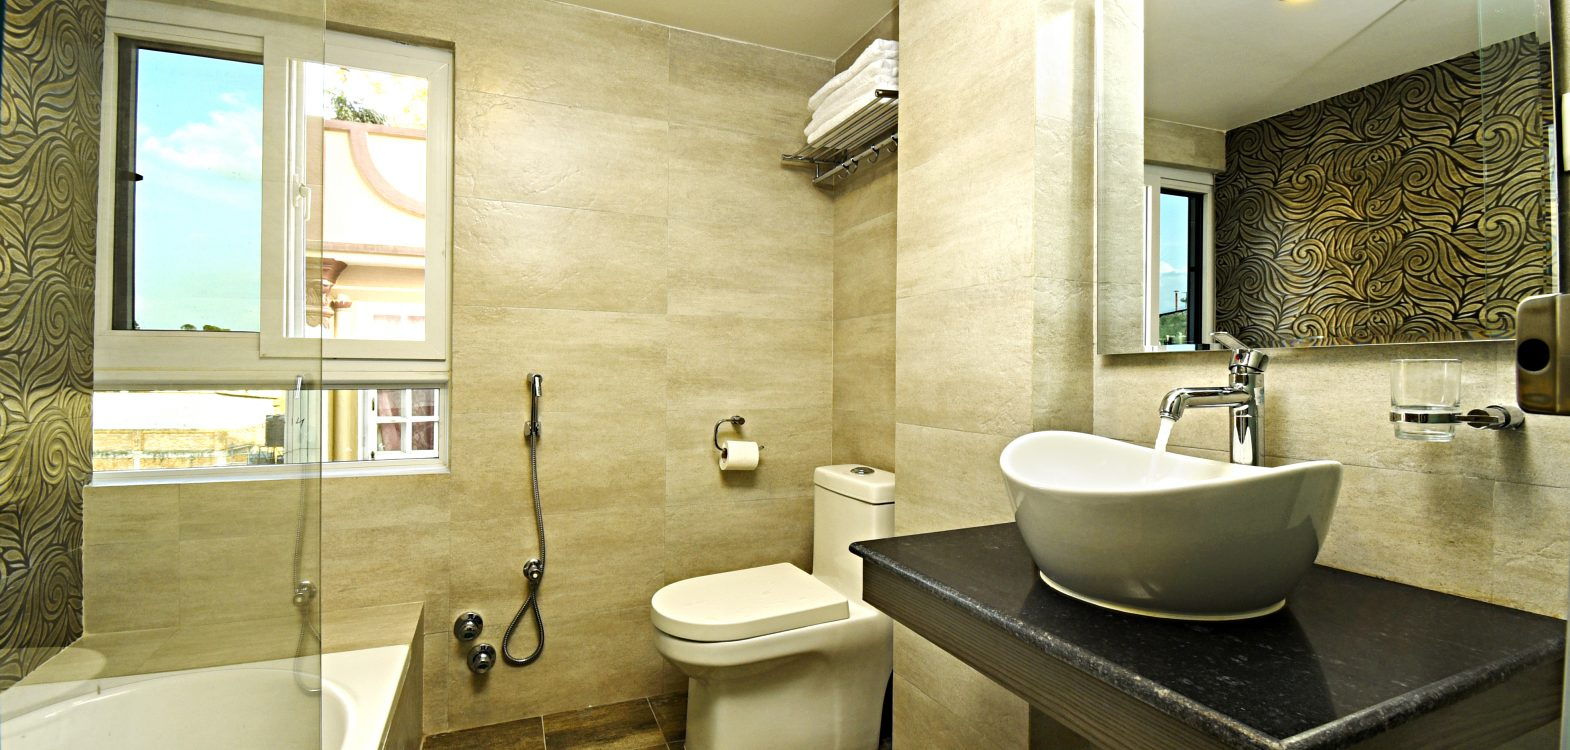 Executive Suite Room en suite Bathroom